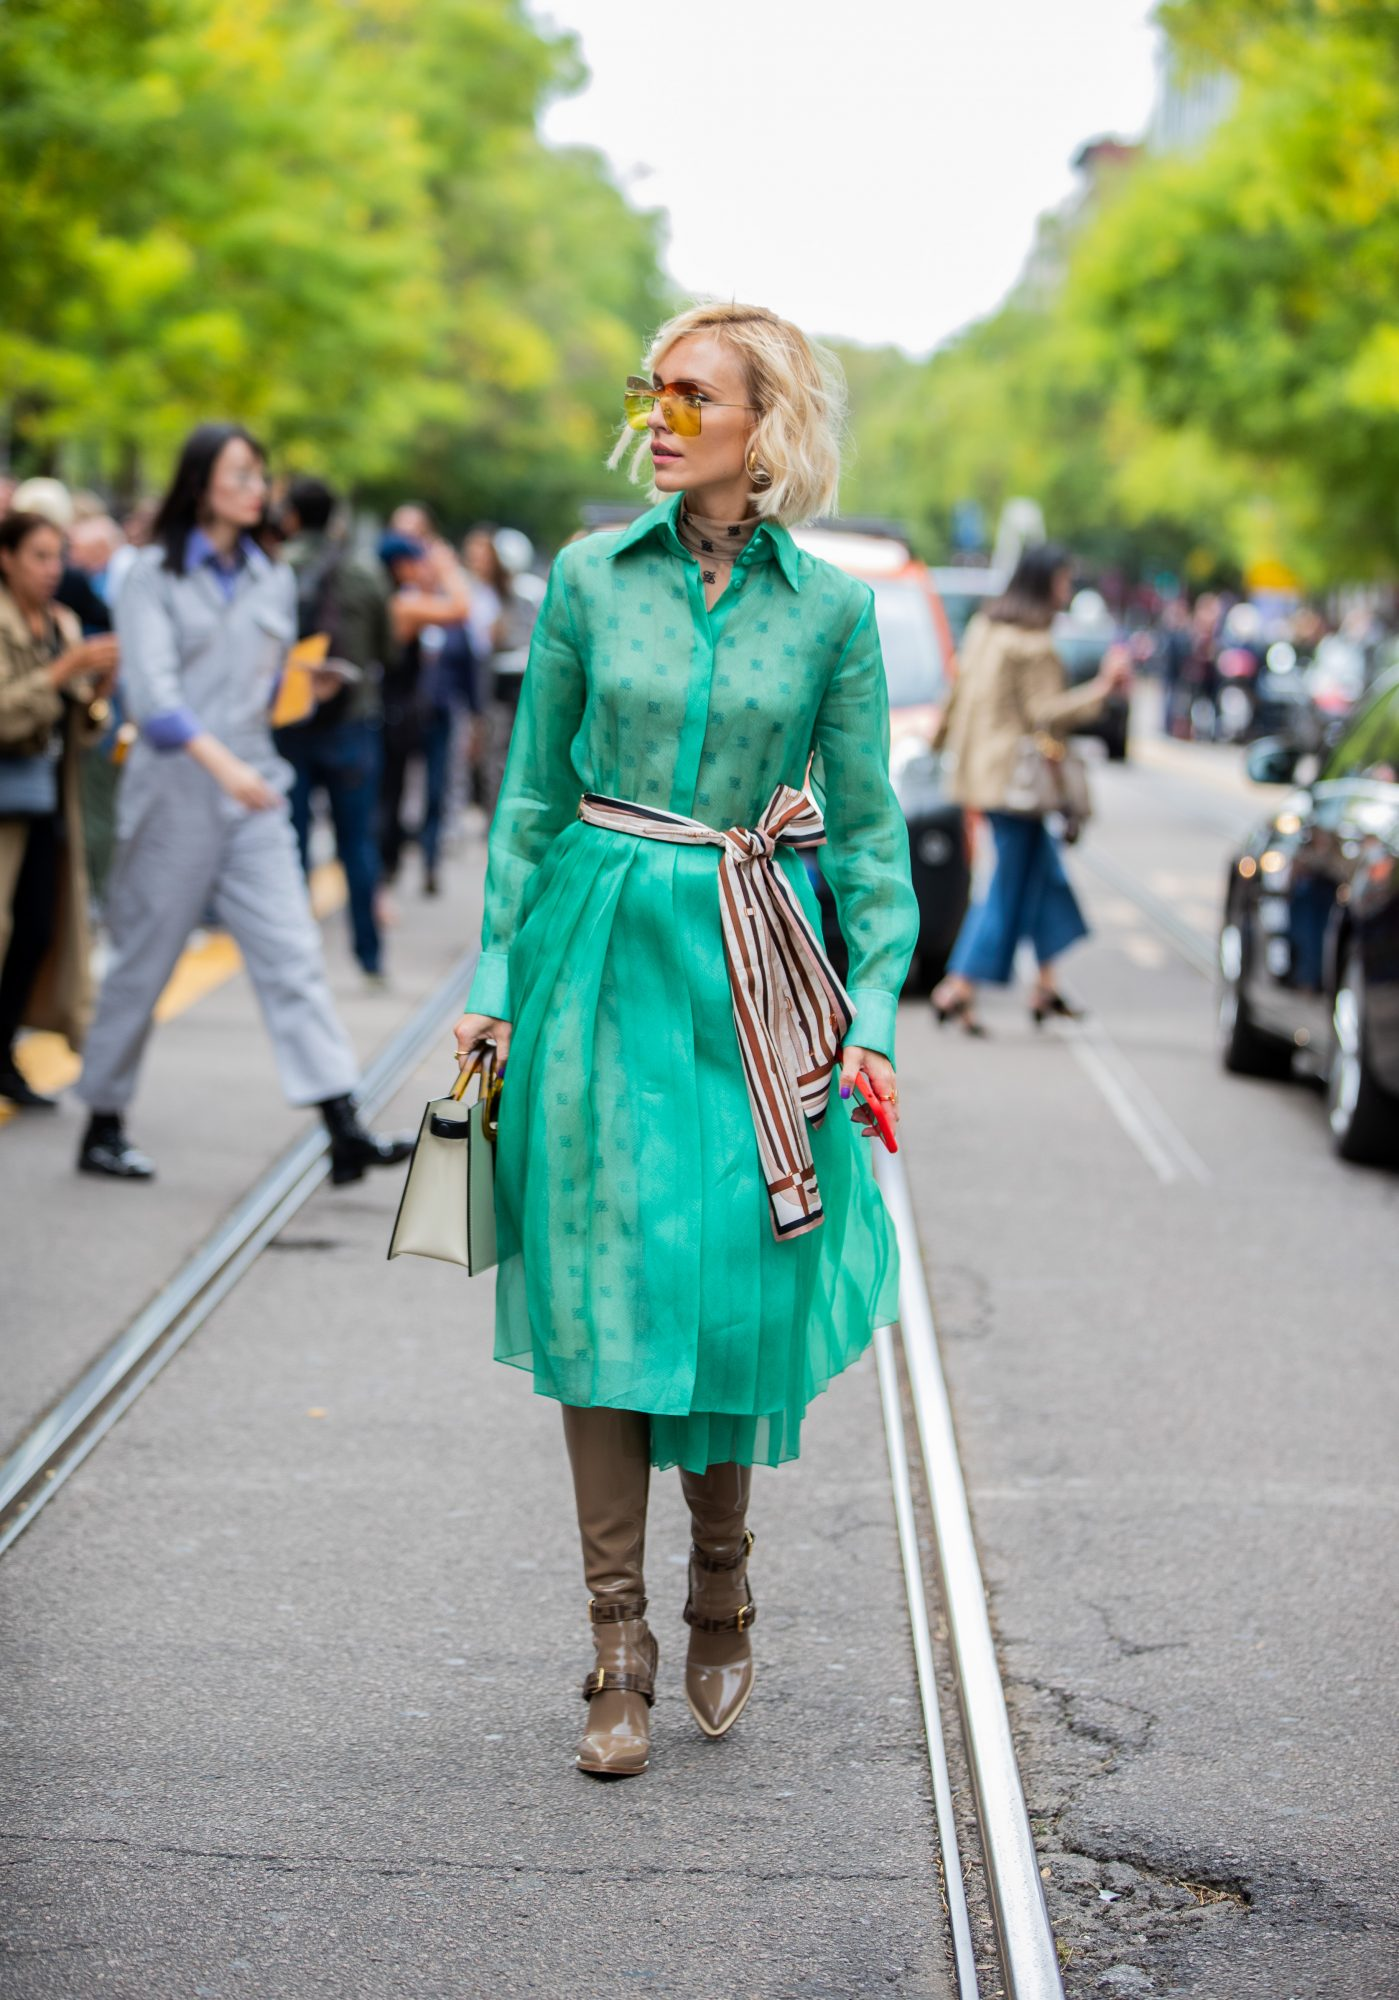 St. Patrick's Day Outfit Ideas, Green Dress